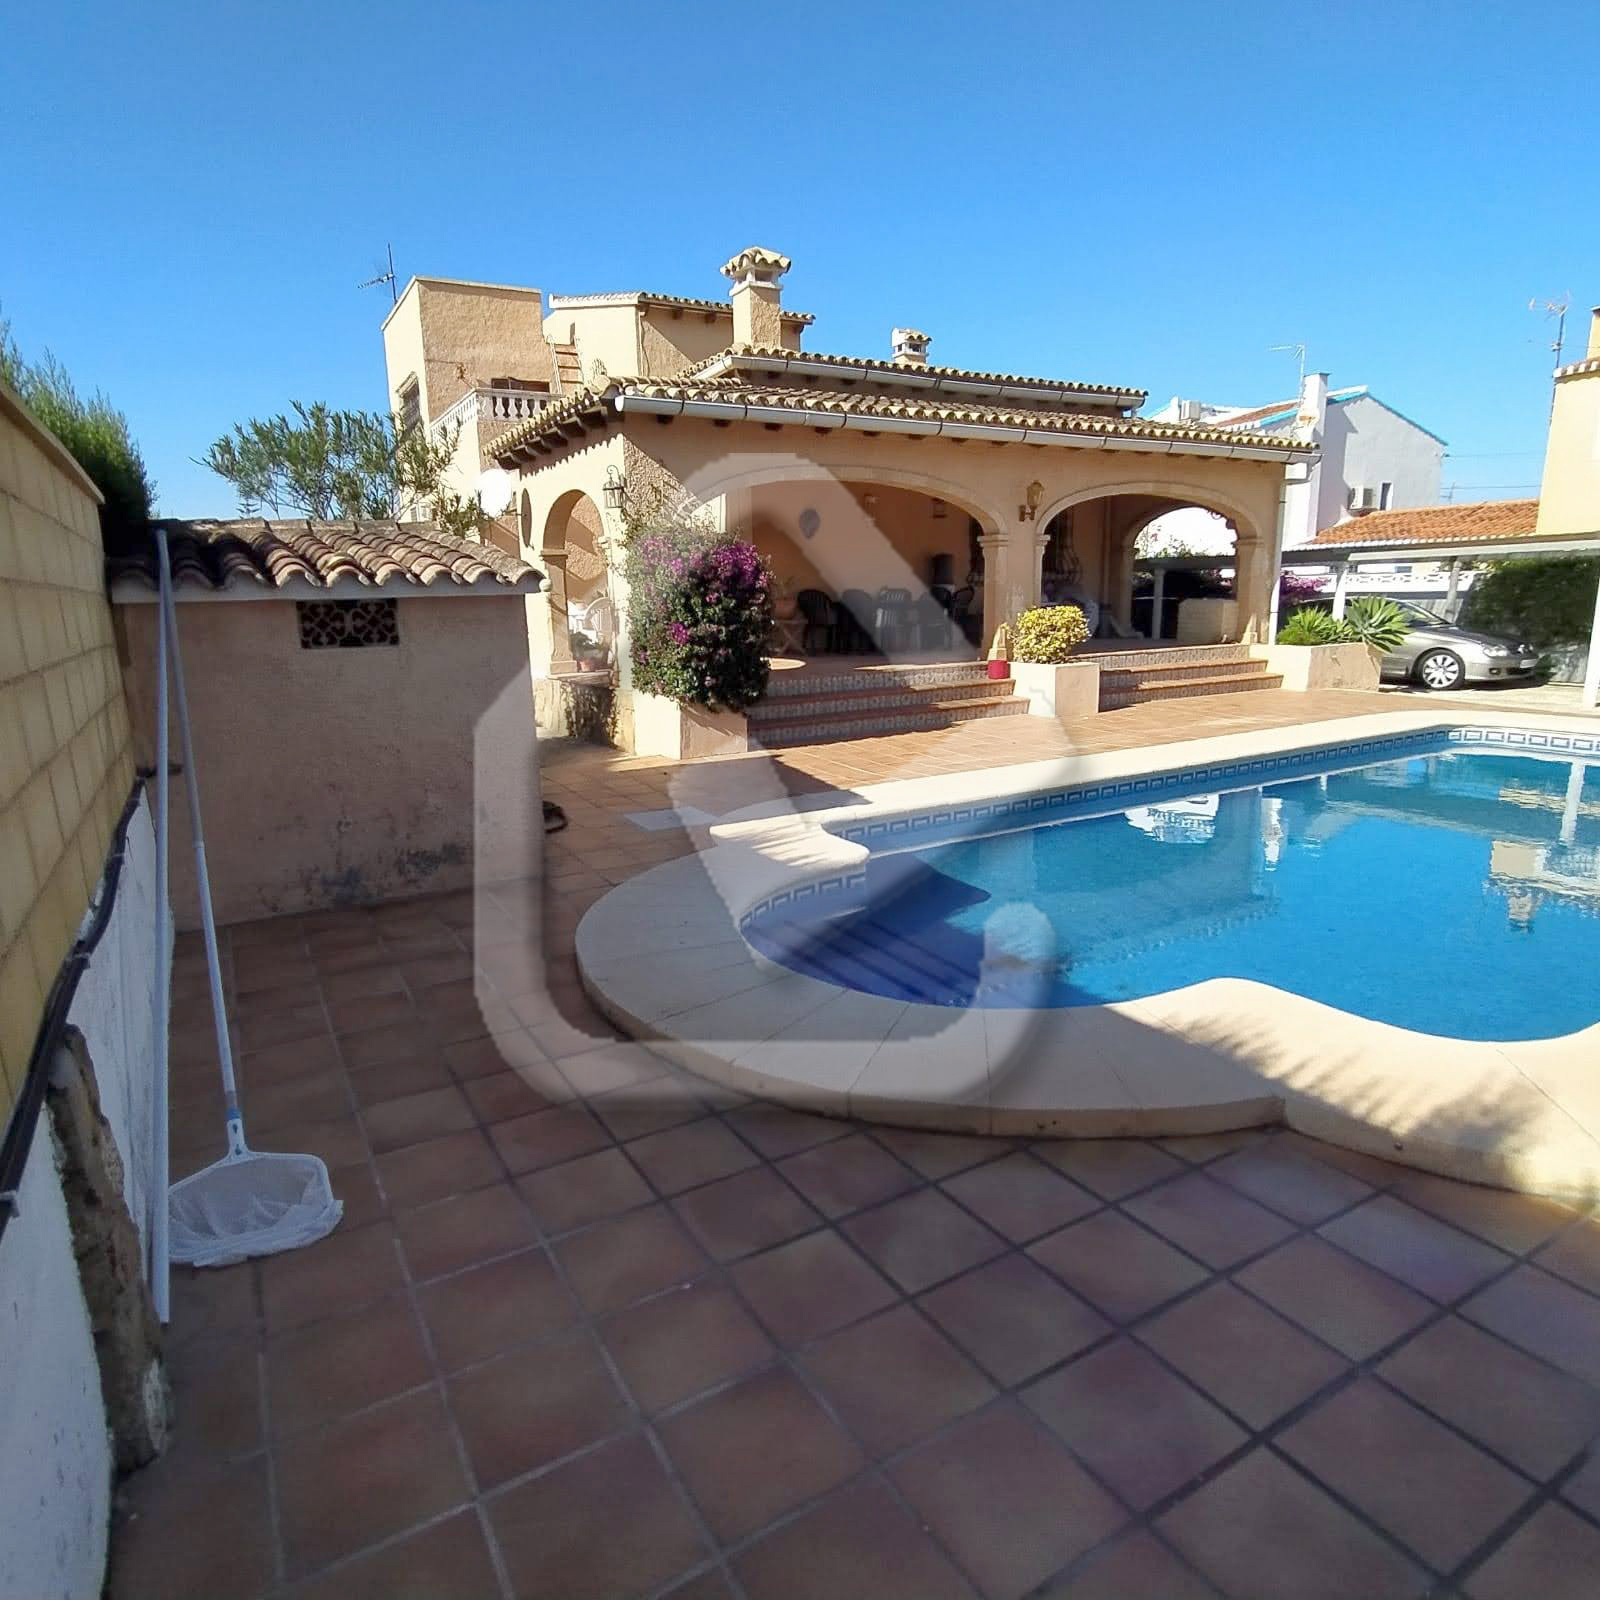 Photo  number 48: Villa in Sale in Denia, Area Marinas, Sector Bassetes-bovetes. Ref. 5-36-14957